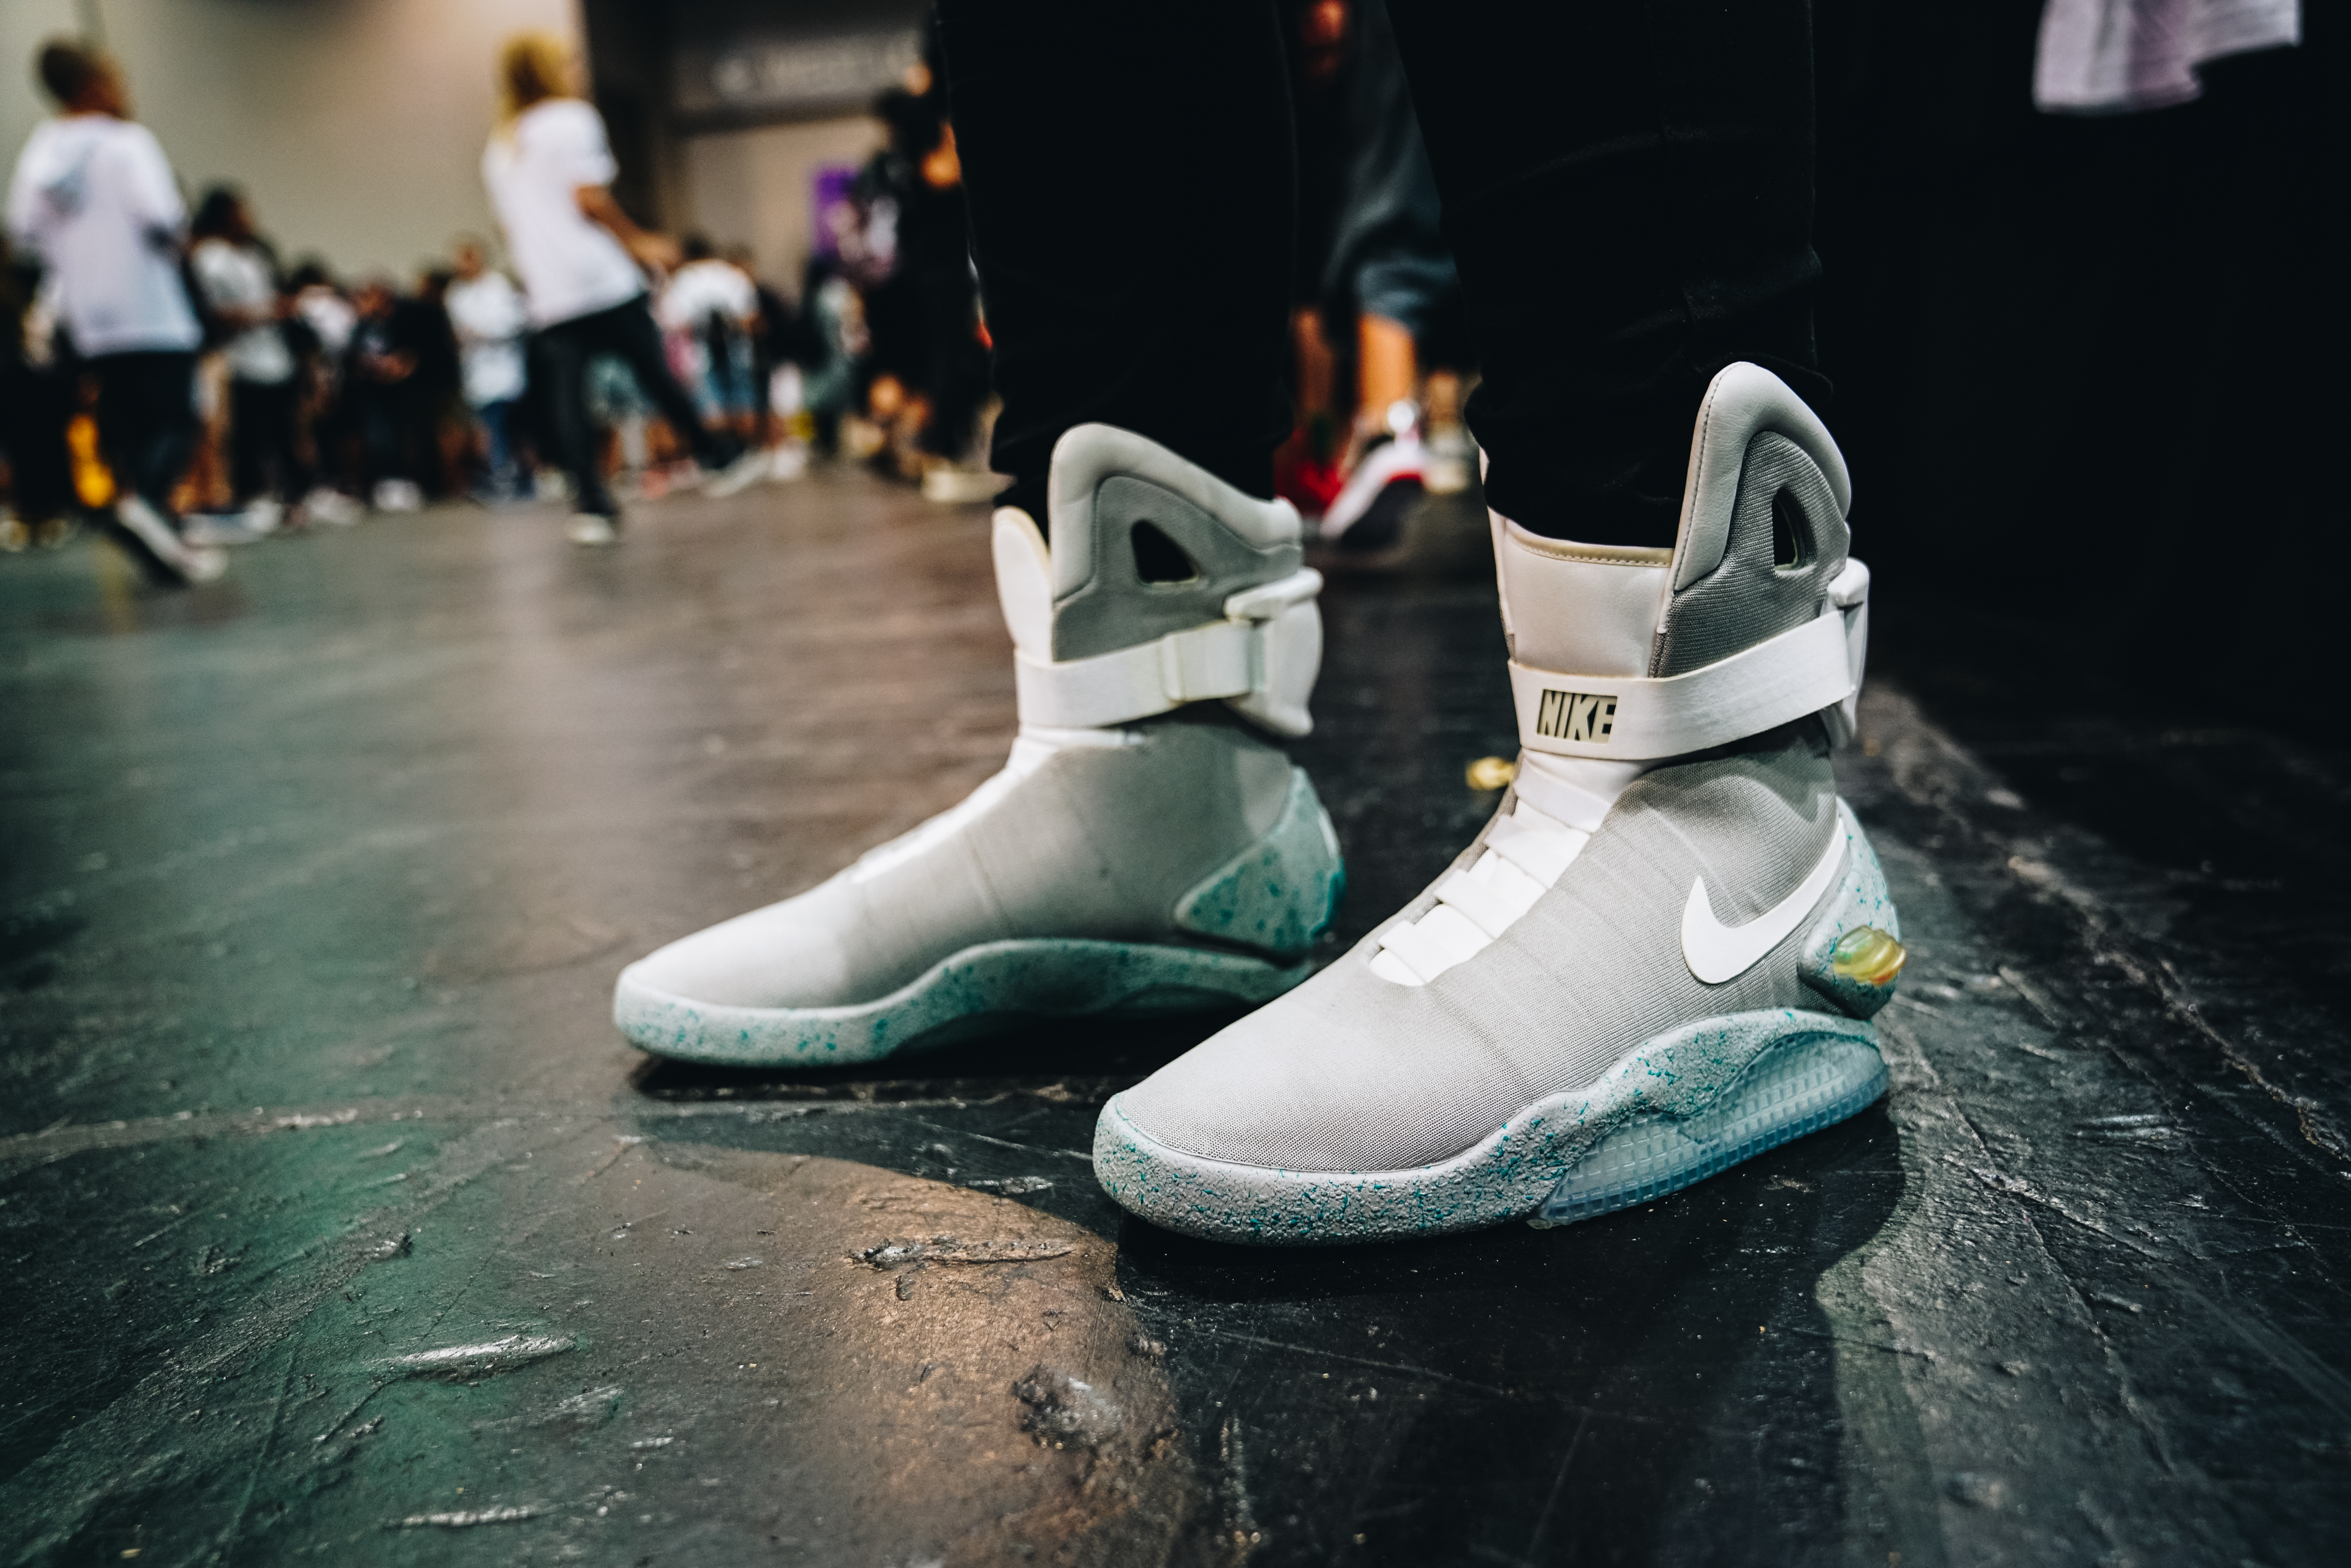 eb427c4855d8 Here Are The 11 Best Sneakers We Spotted On-Feet At Sneaker Con Hong Kong